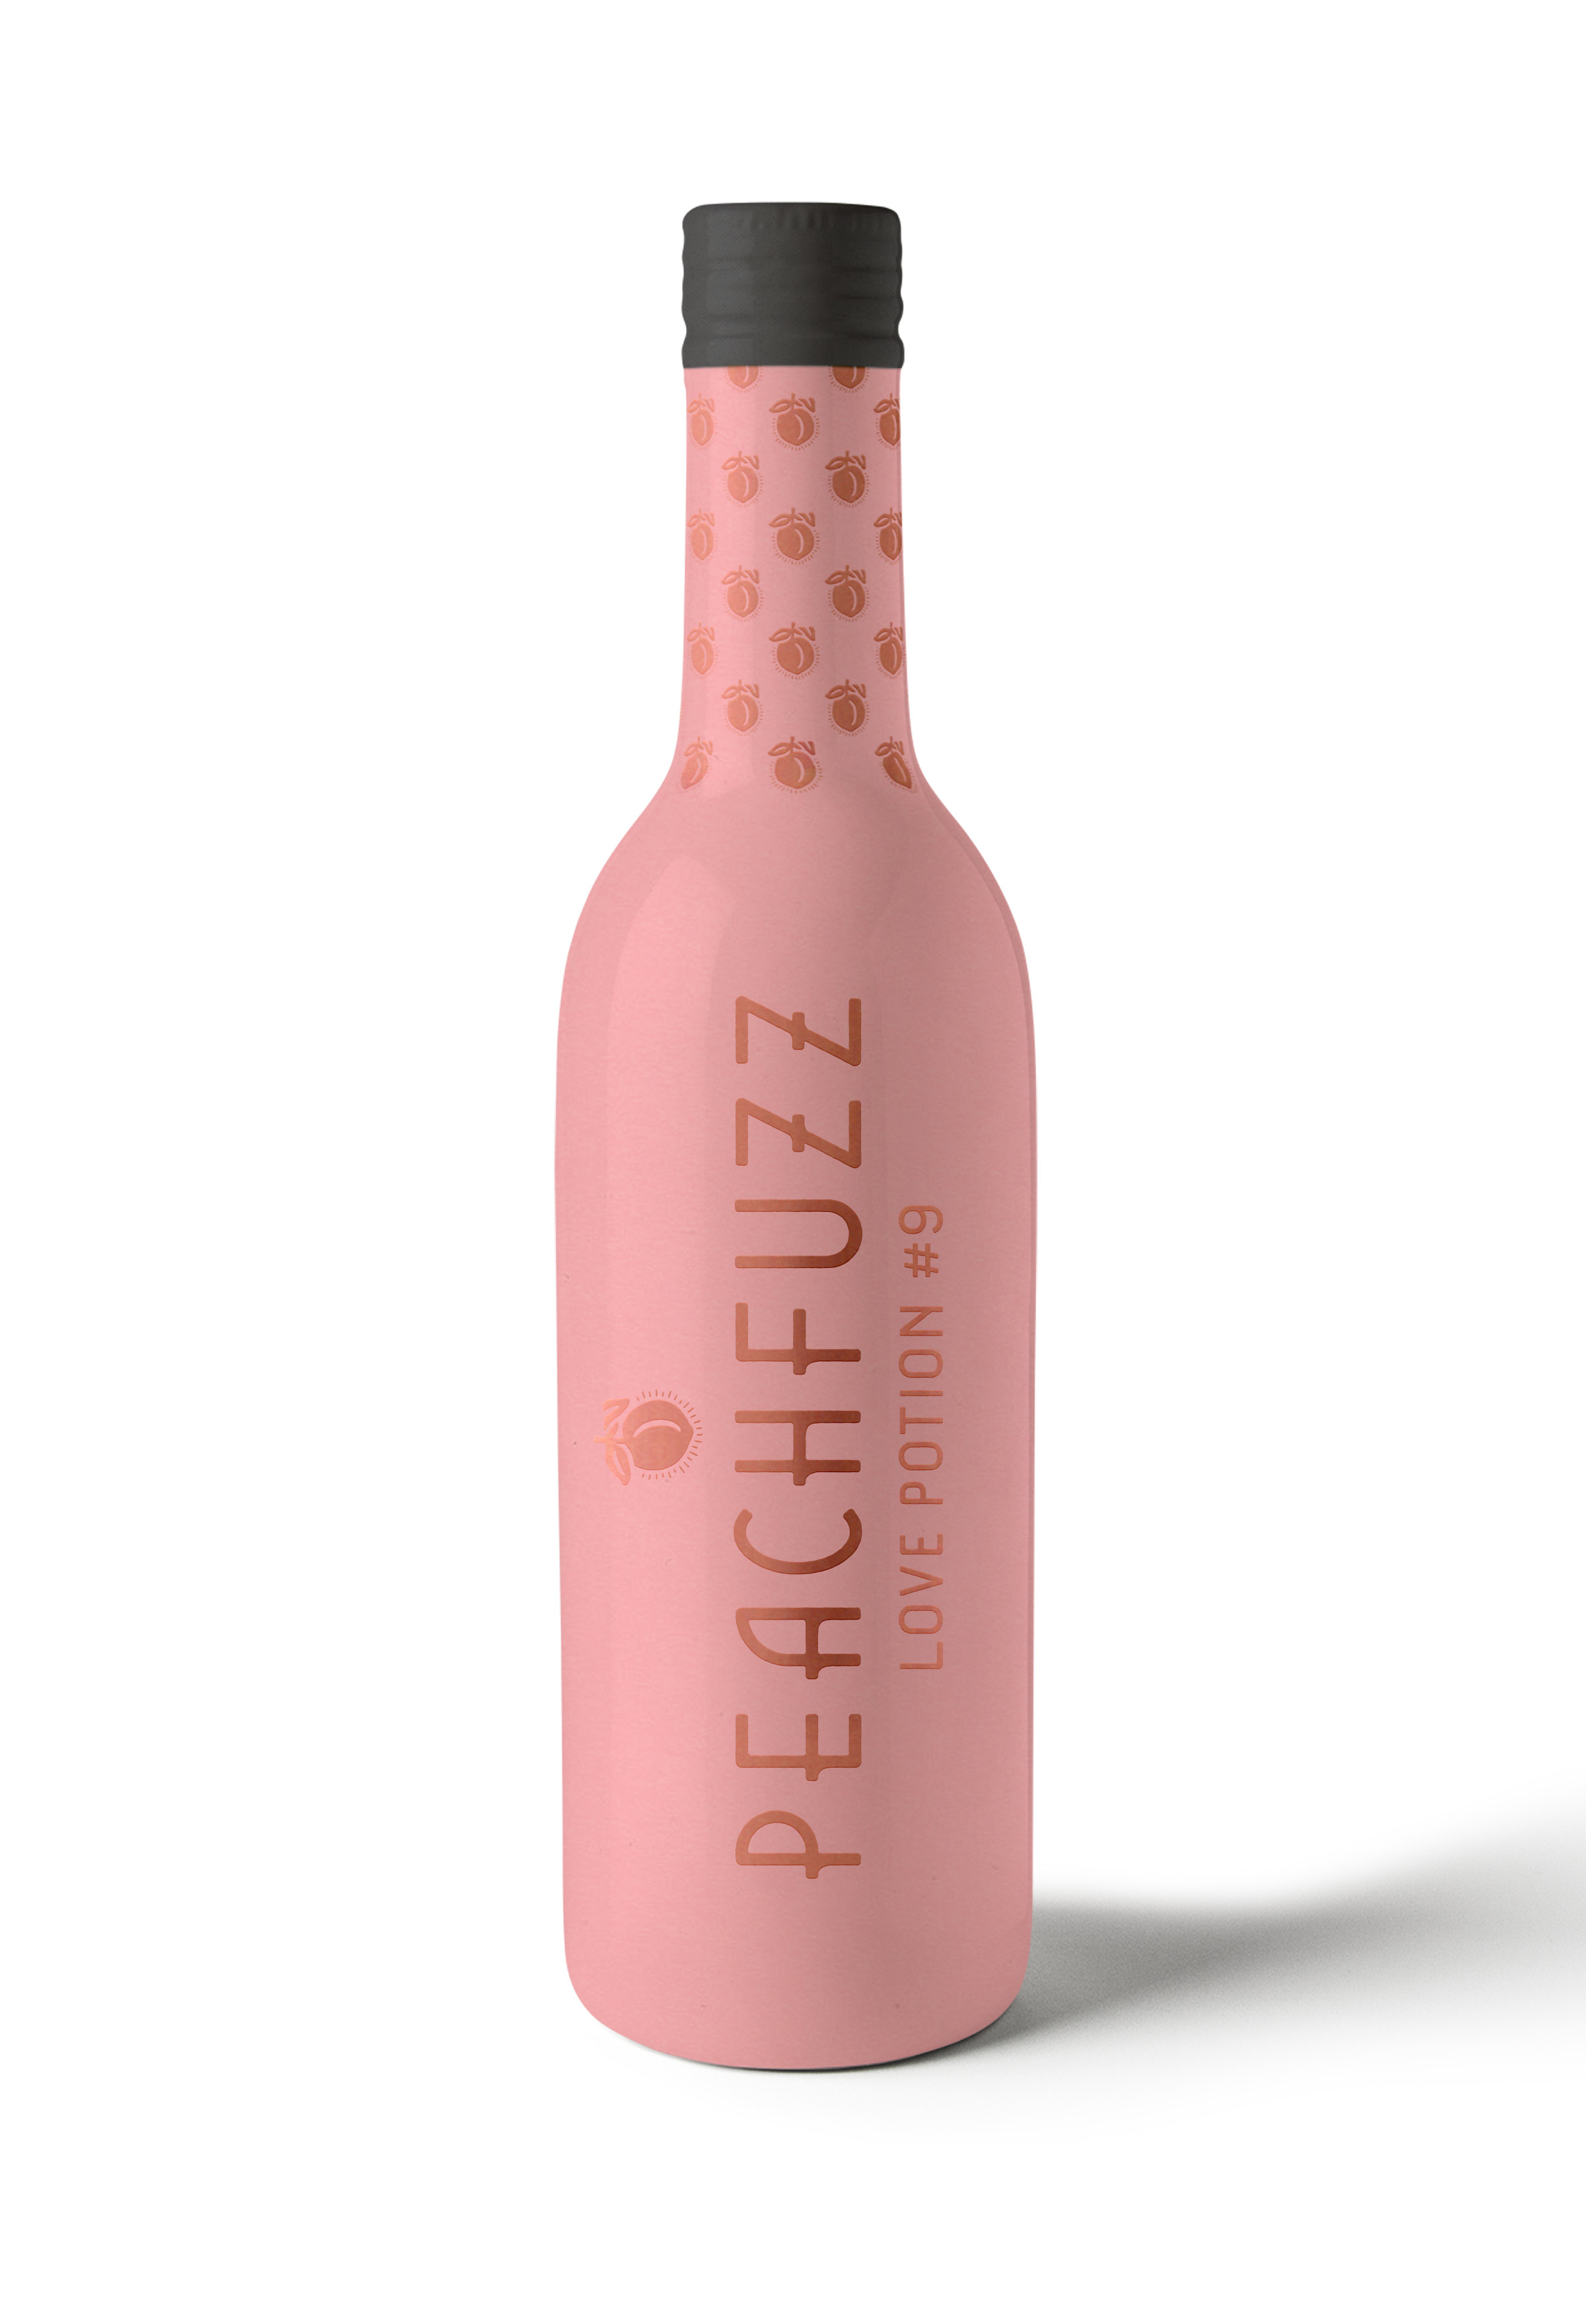 peachfuzz_bottle